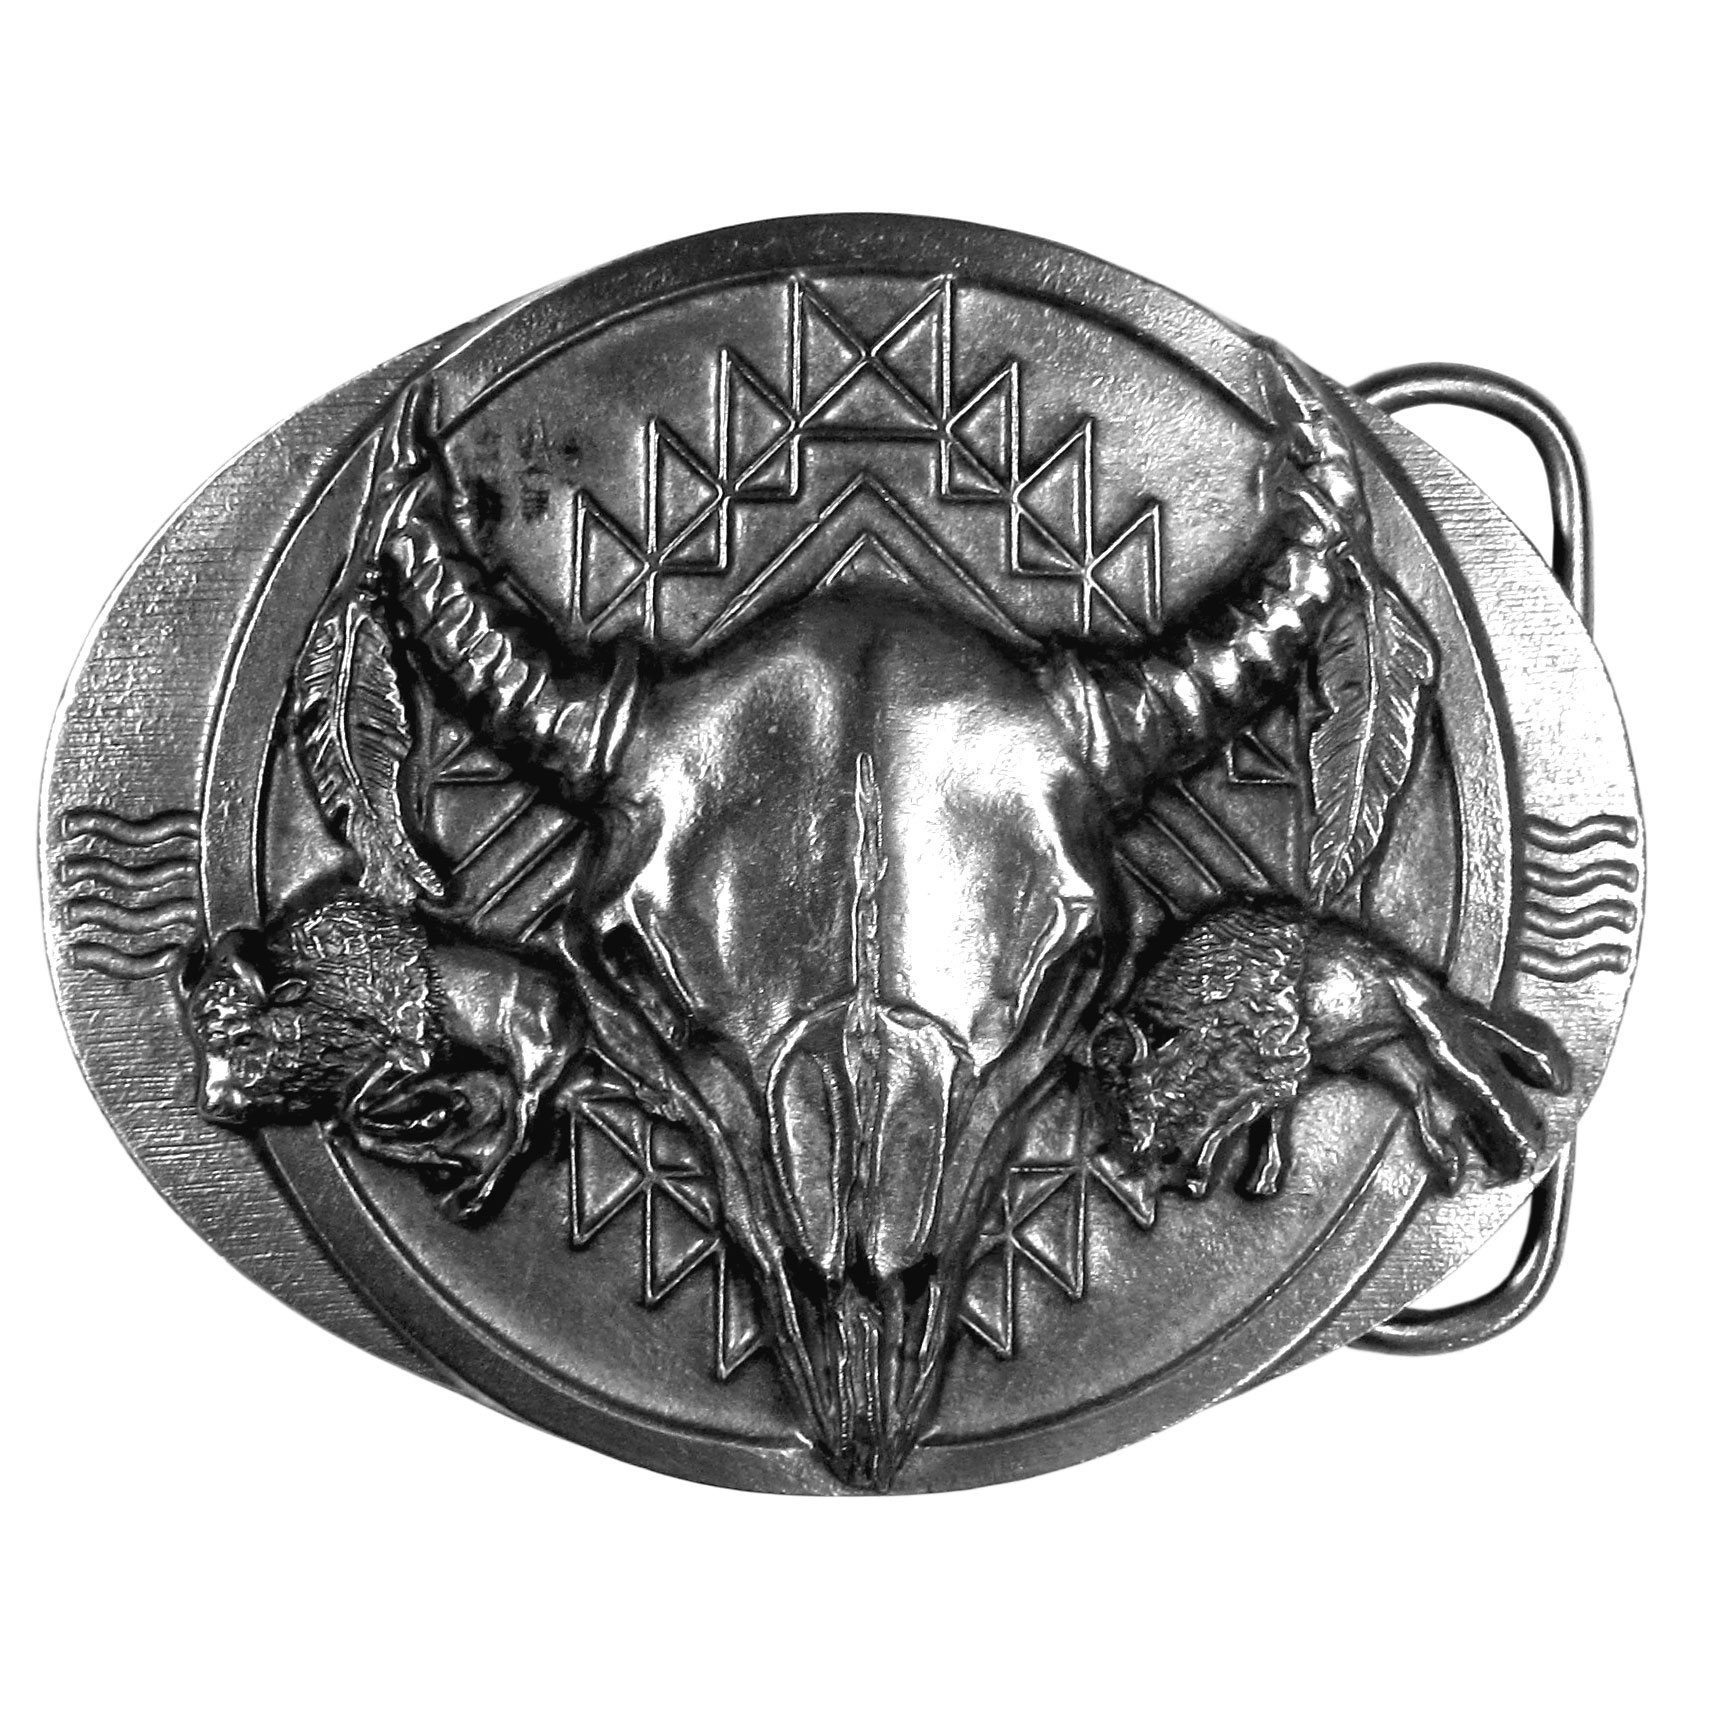 "Buffalo Skull Antiqued Belt Buckle - ""This exquistely carved oval buckle has a centered buffalo skull.  On each side there is a running buffalo, feathers and Native American hieroglyphics.  This antiqued bucked is made of fully cast metal with a standard bale that fits up to 2"""" belts."""